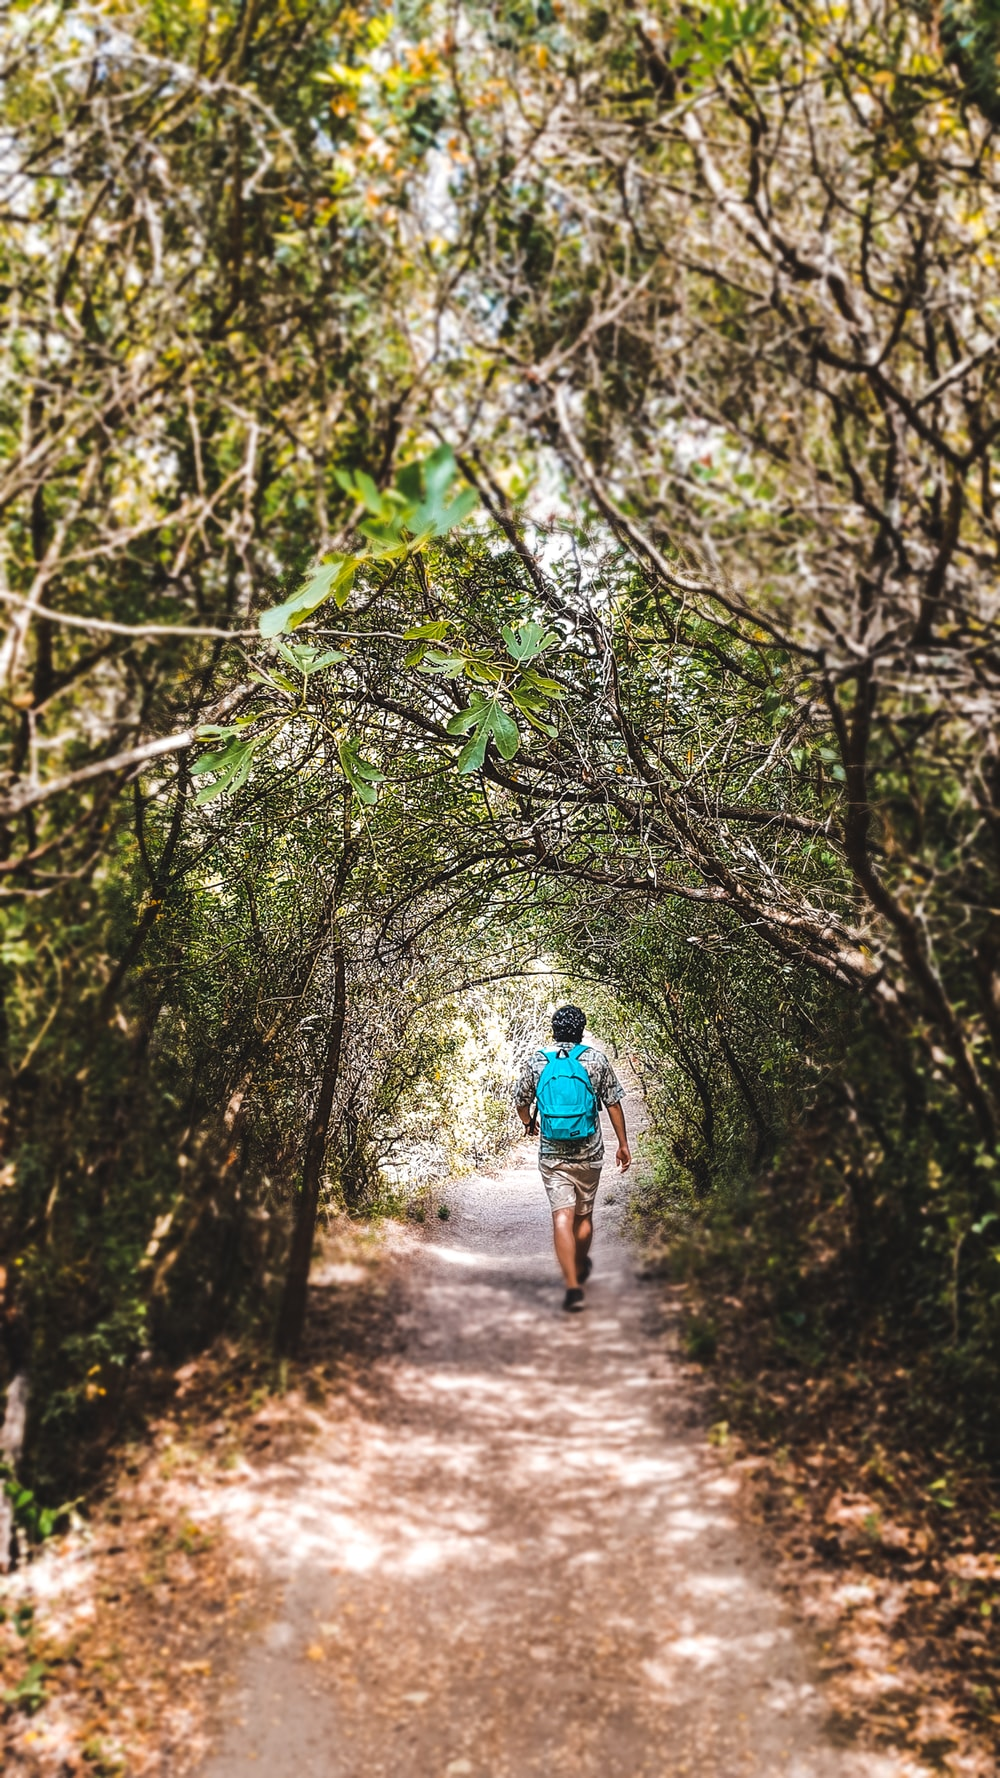 man in blue shirt walking on dirt road in the middle of trees during daytime